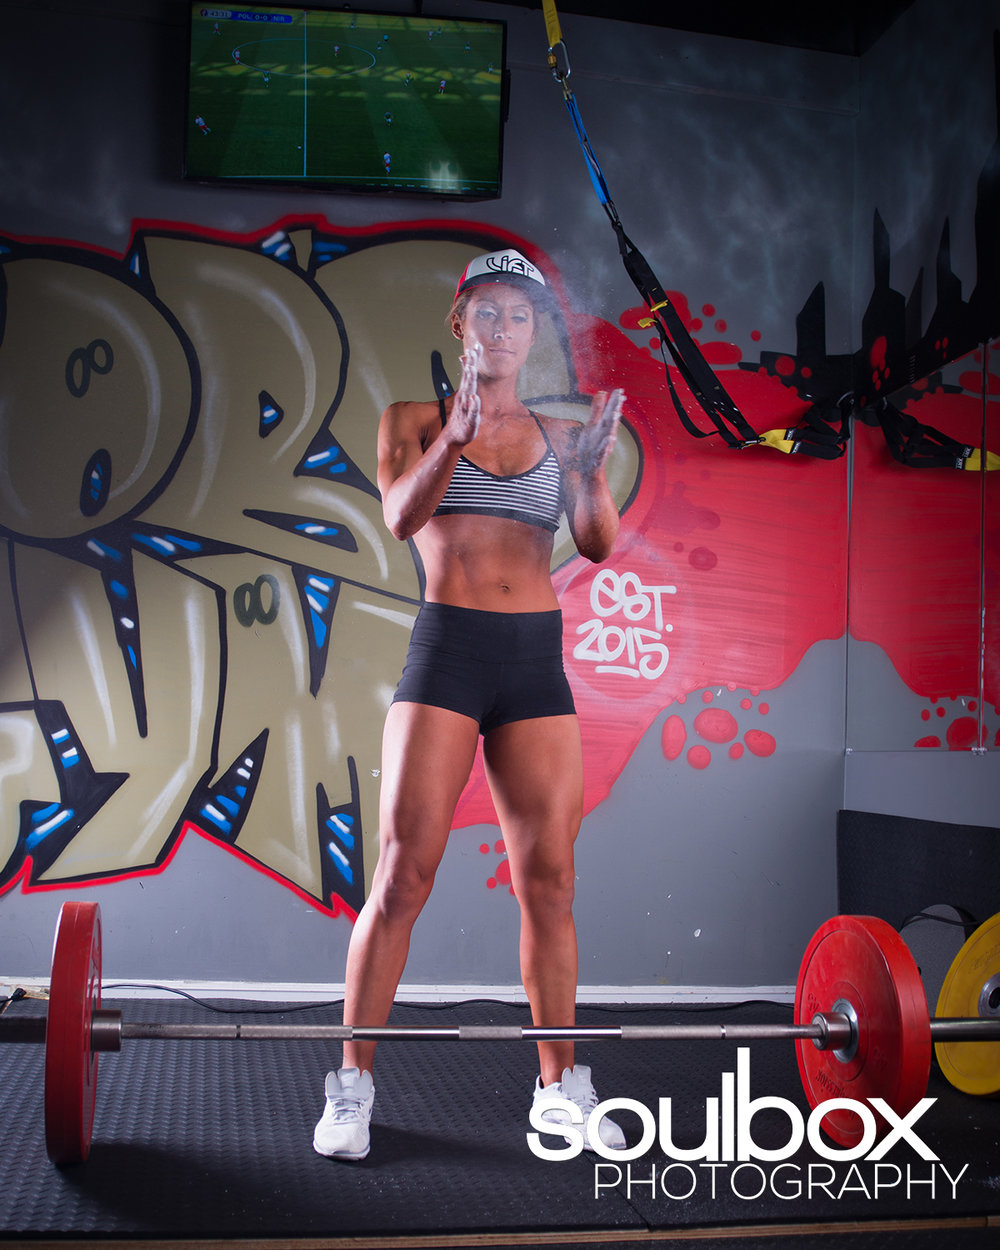 Soulbox Photography Fitness Photography